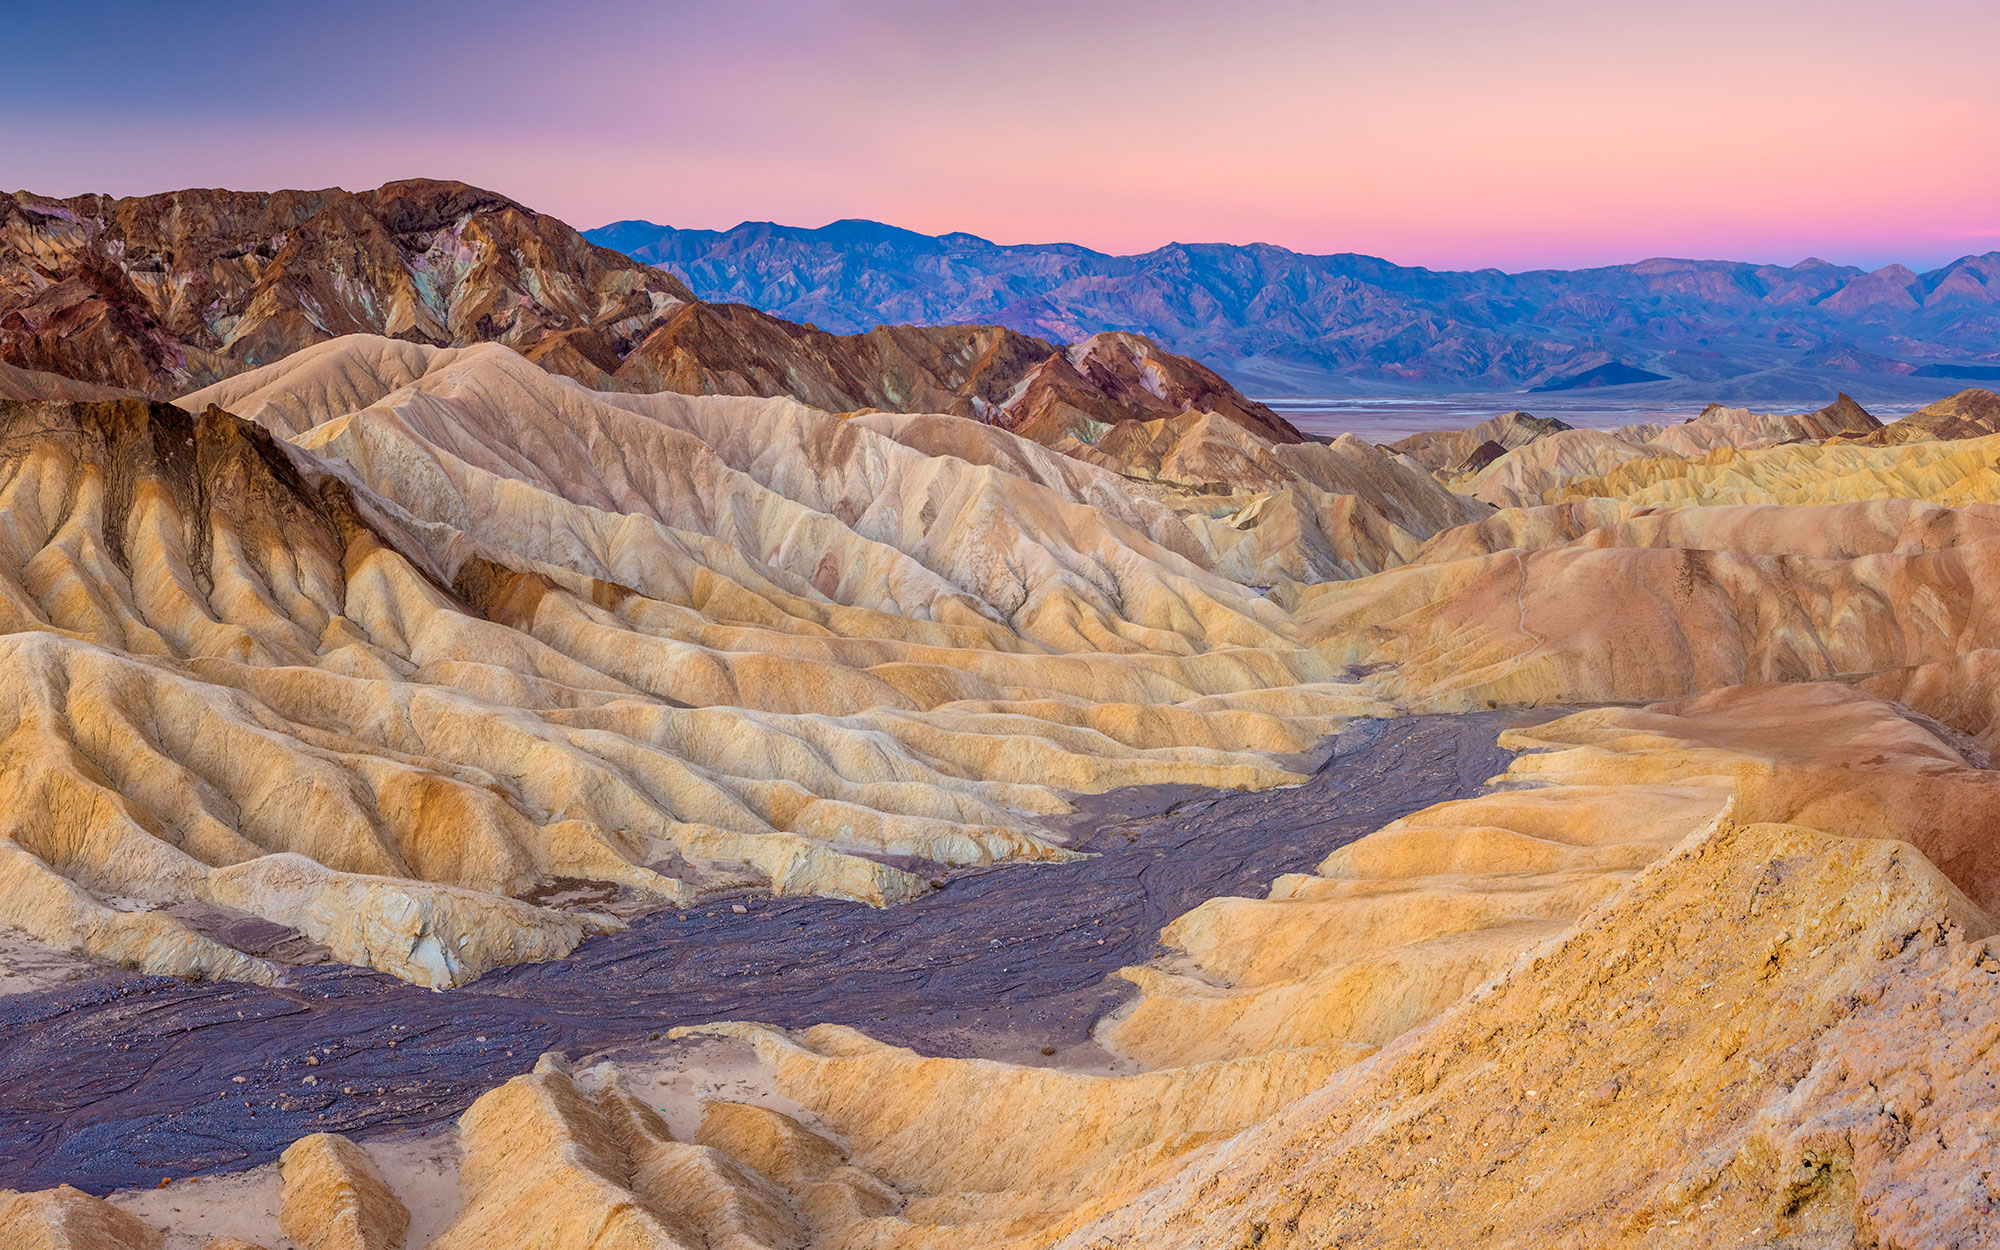 USA, North America, California, Death Valley National Park, Zabriskie Point at sunset